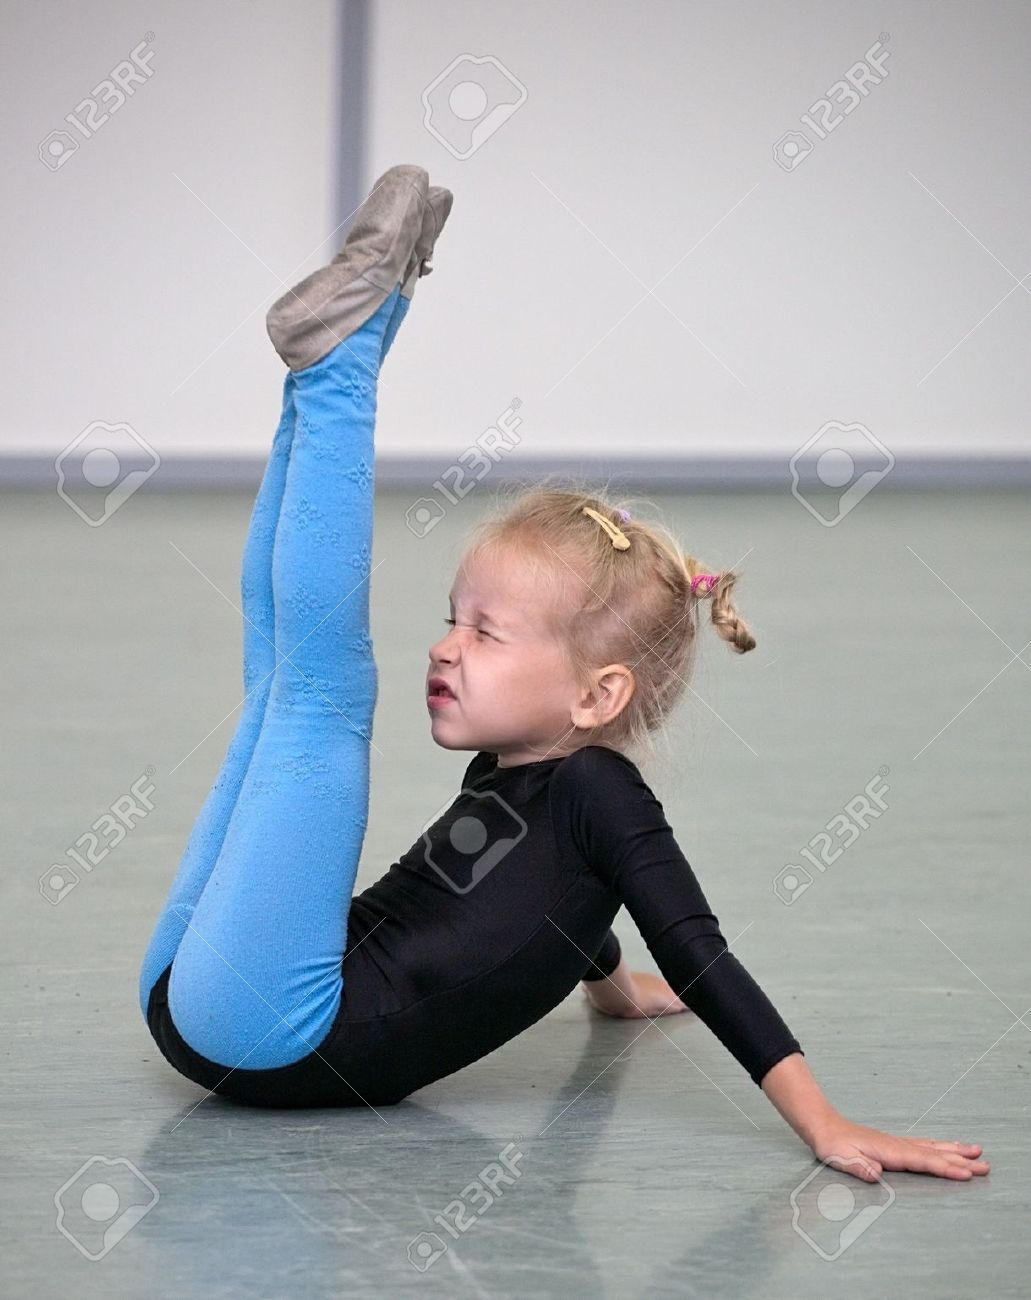 little gymnast girl in gym Stock Photo - 7916340